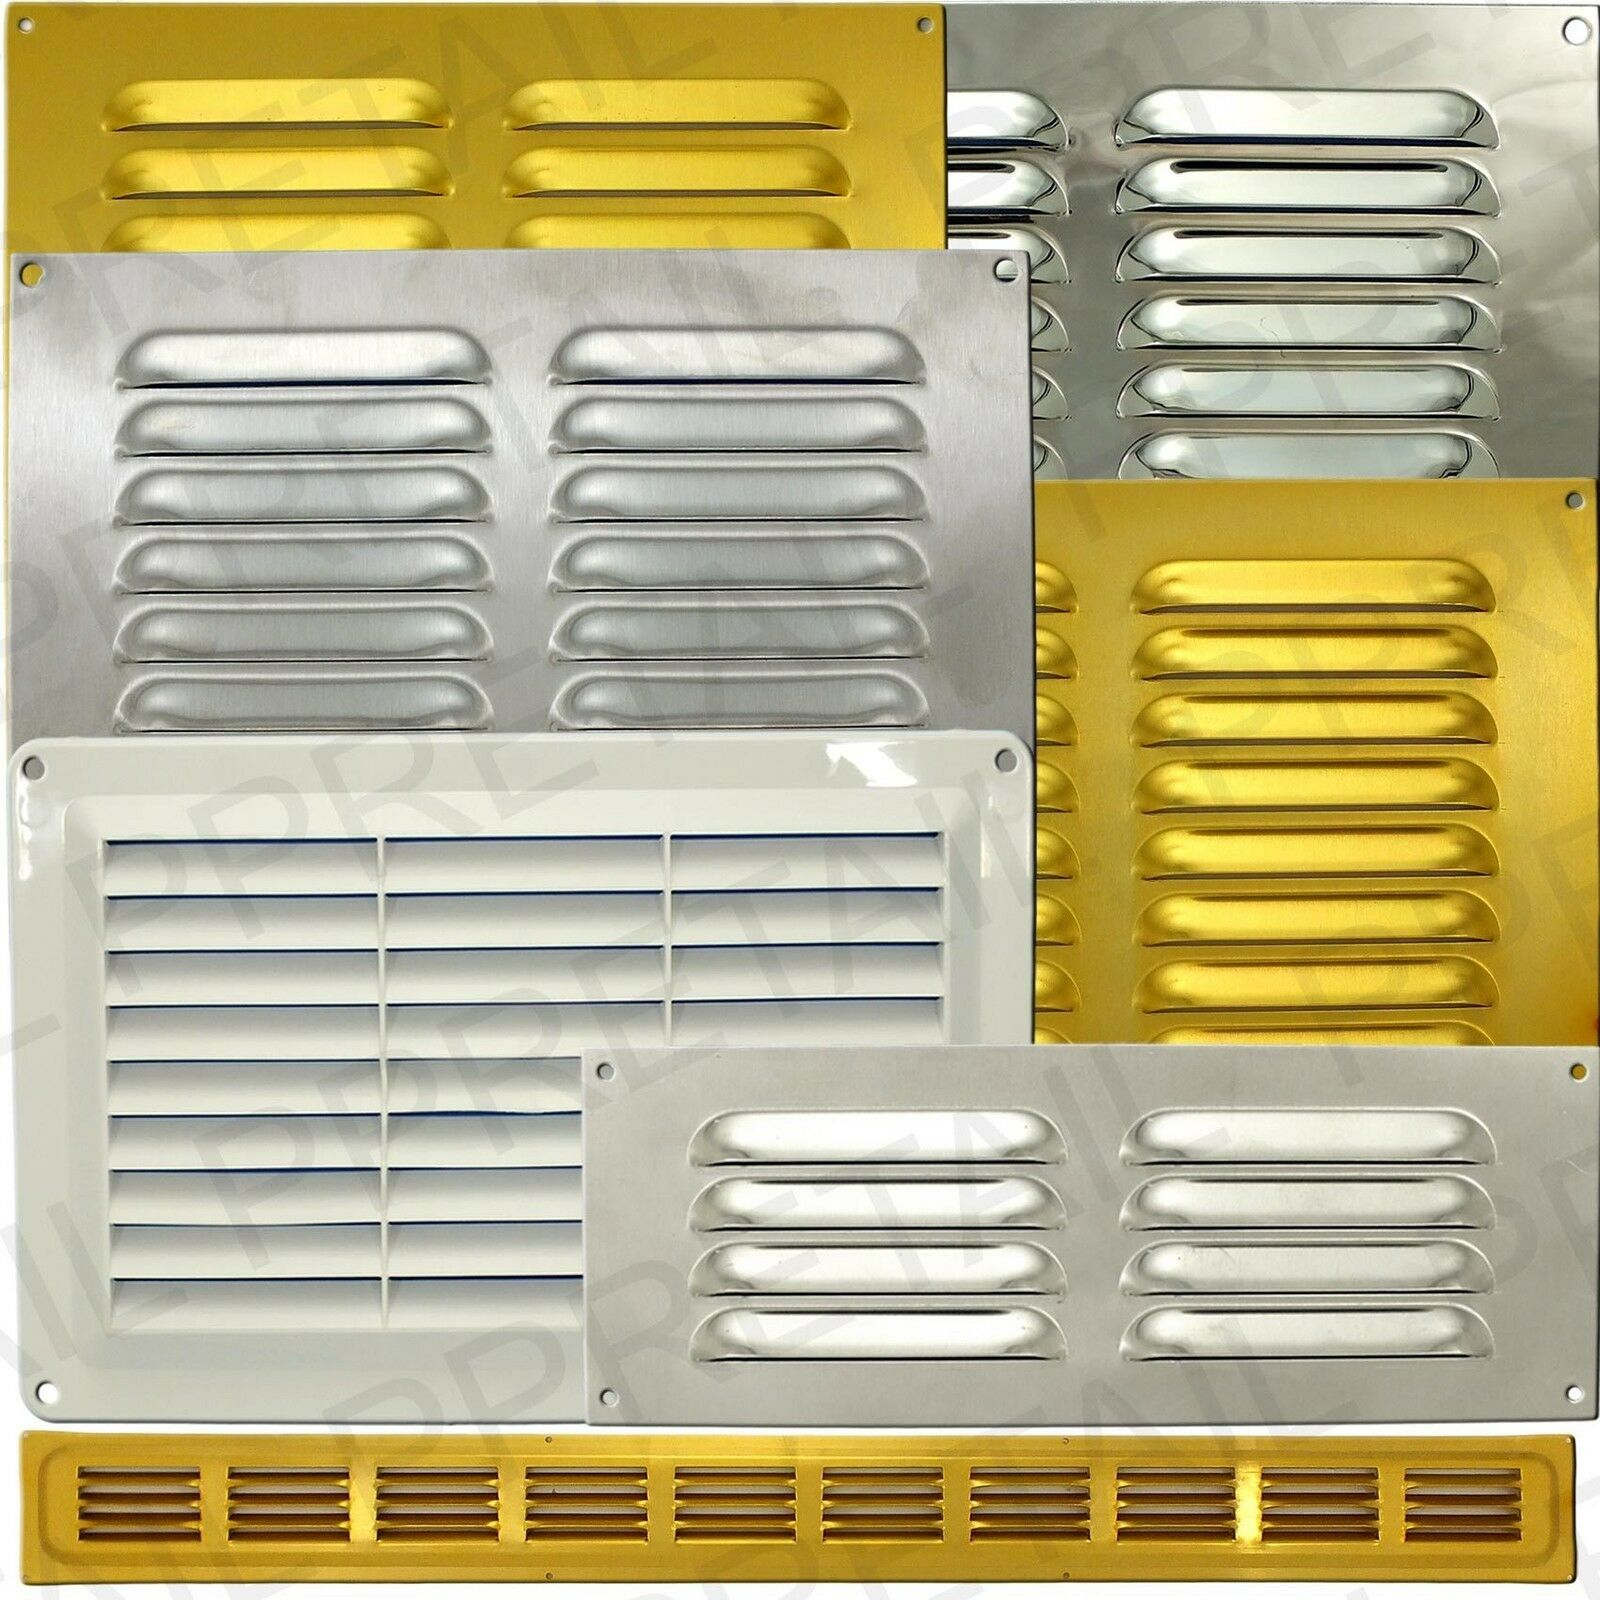 #B49517 ★SMALL LARGE LOUVRE AIR VENTS★HUGE RANGE★Ventilator Duct  Highly Rated 4589 Hvac Wall Vents wallpapers with 1600x1600 px on helpvideos.info - Air Conditioners, Air Coolers and more